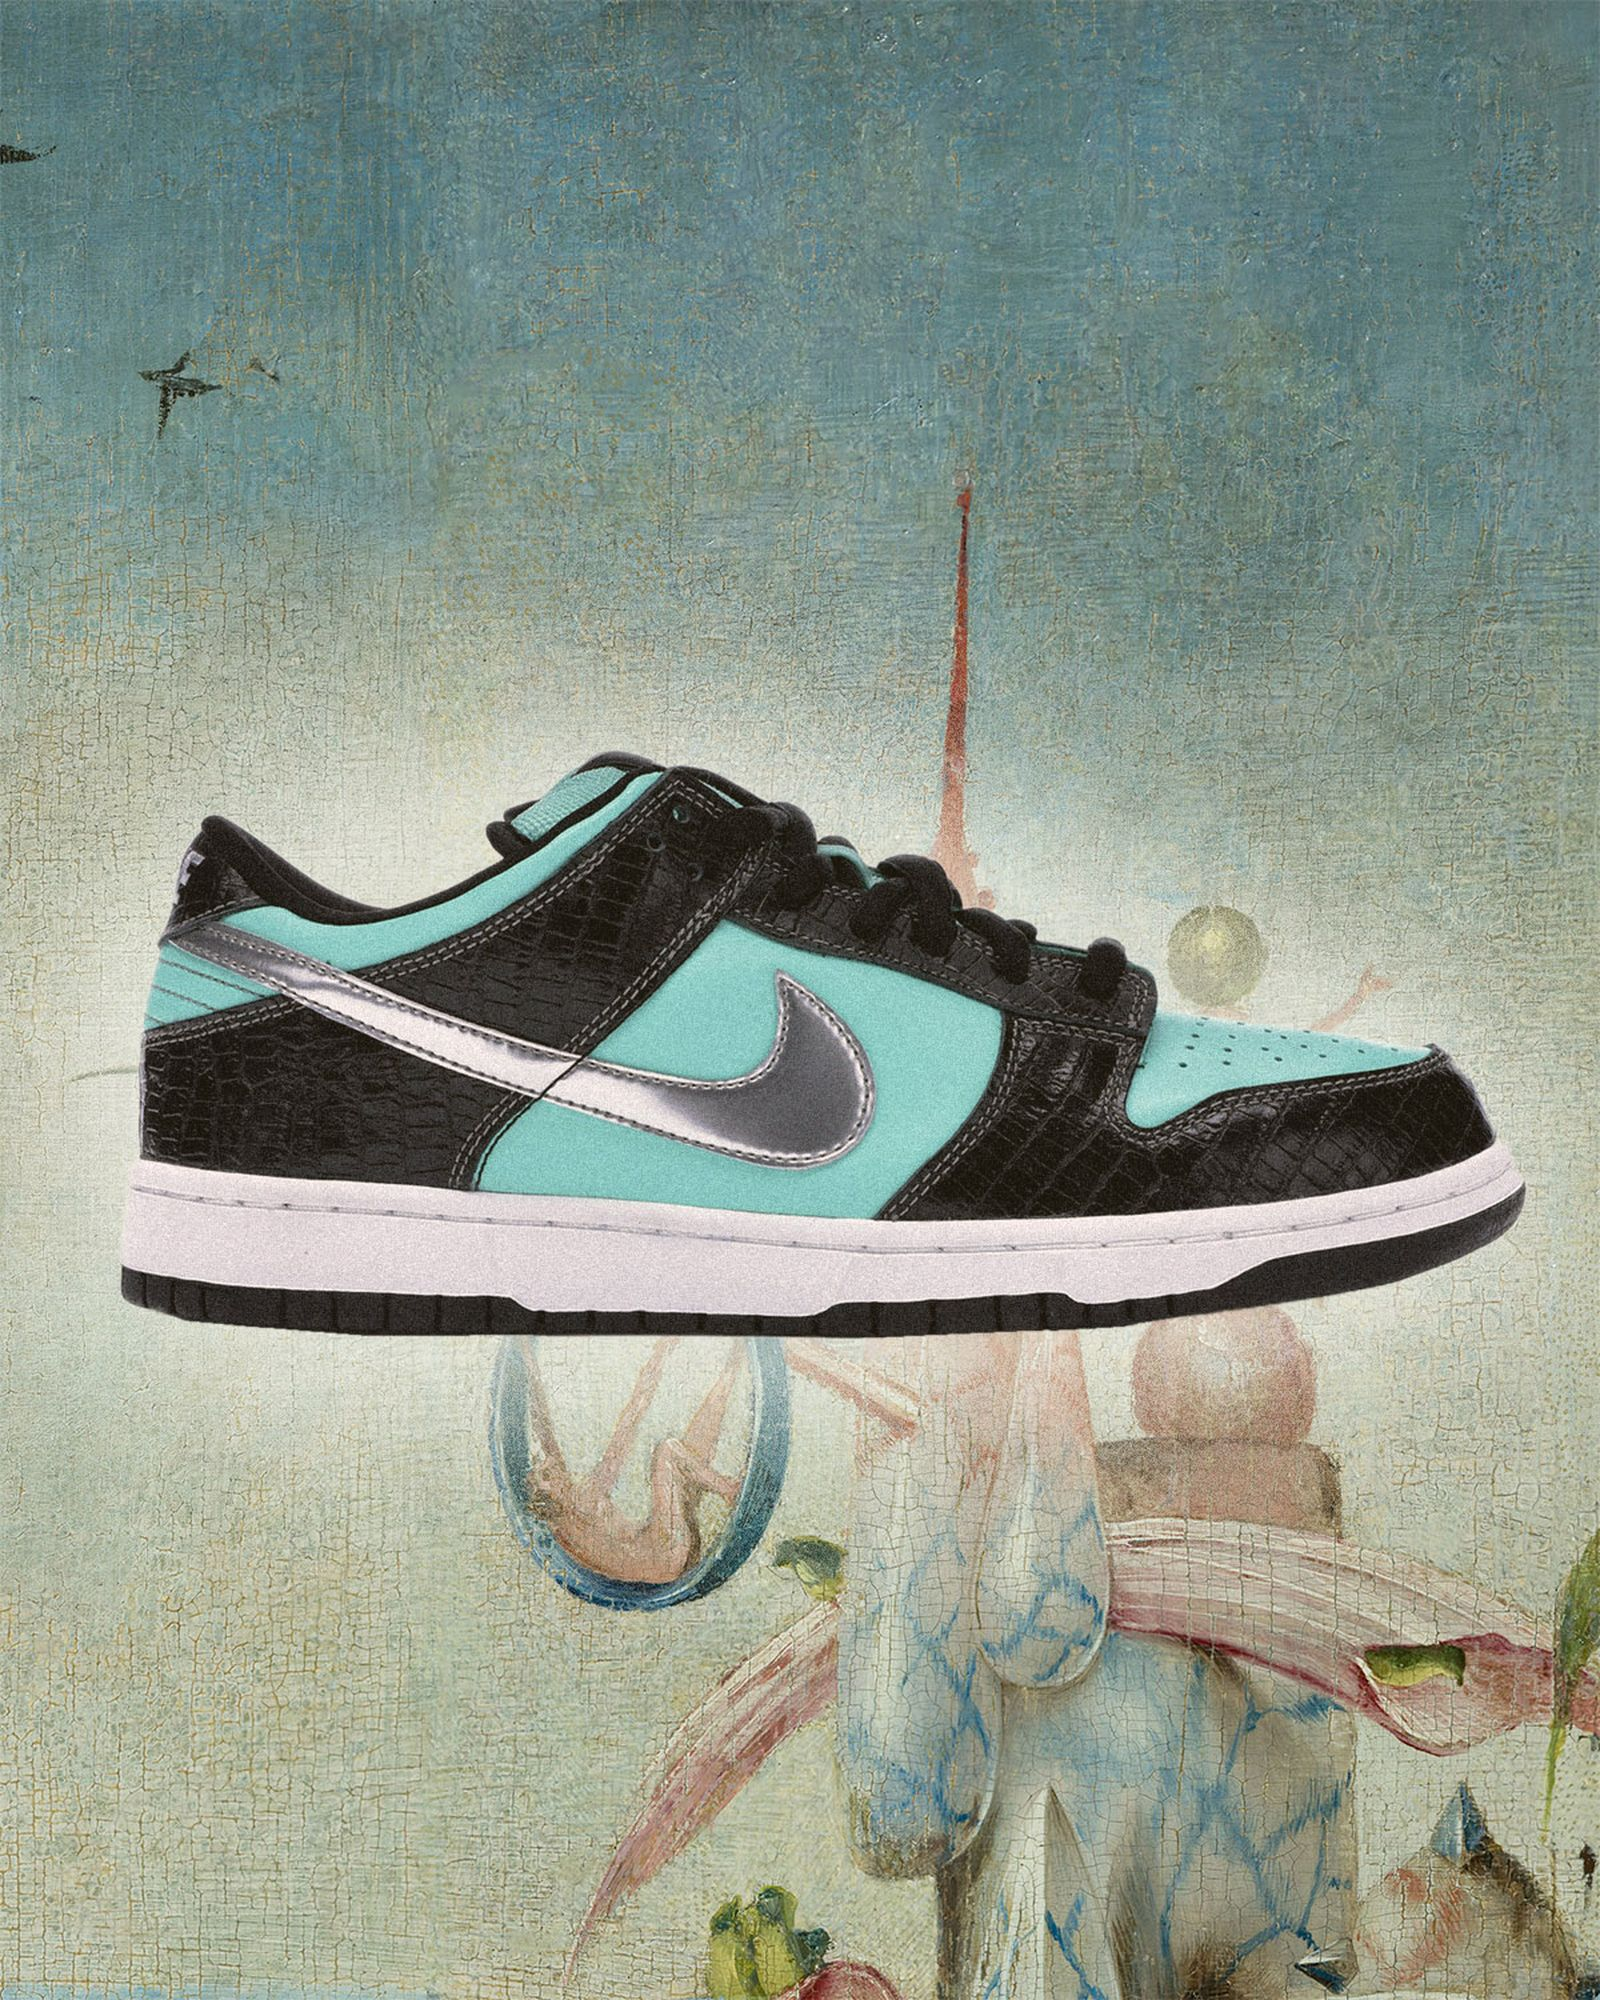 06-Nike-Dunk-SB-Low-Diamond-Supply-Co-Tiffany-Product